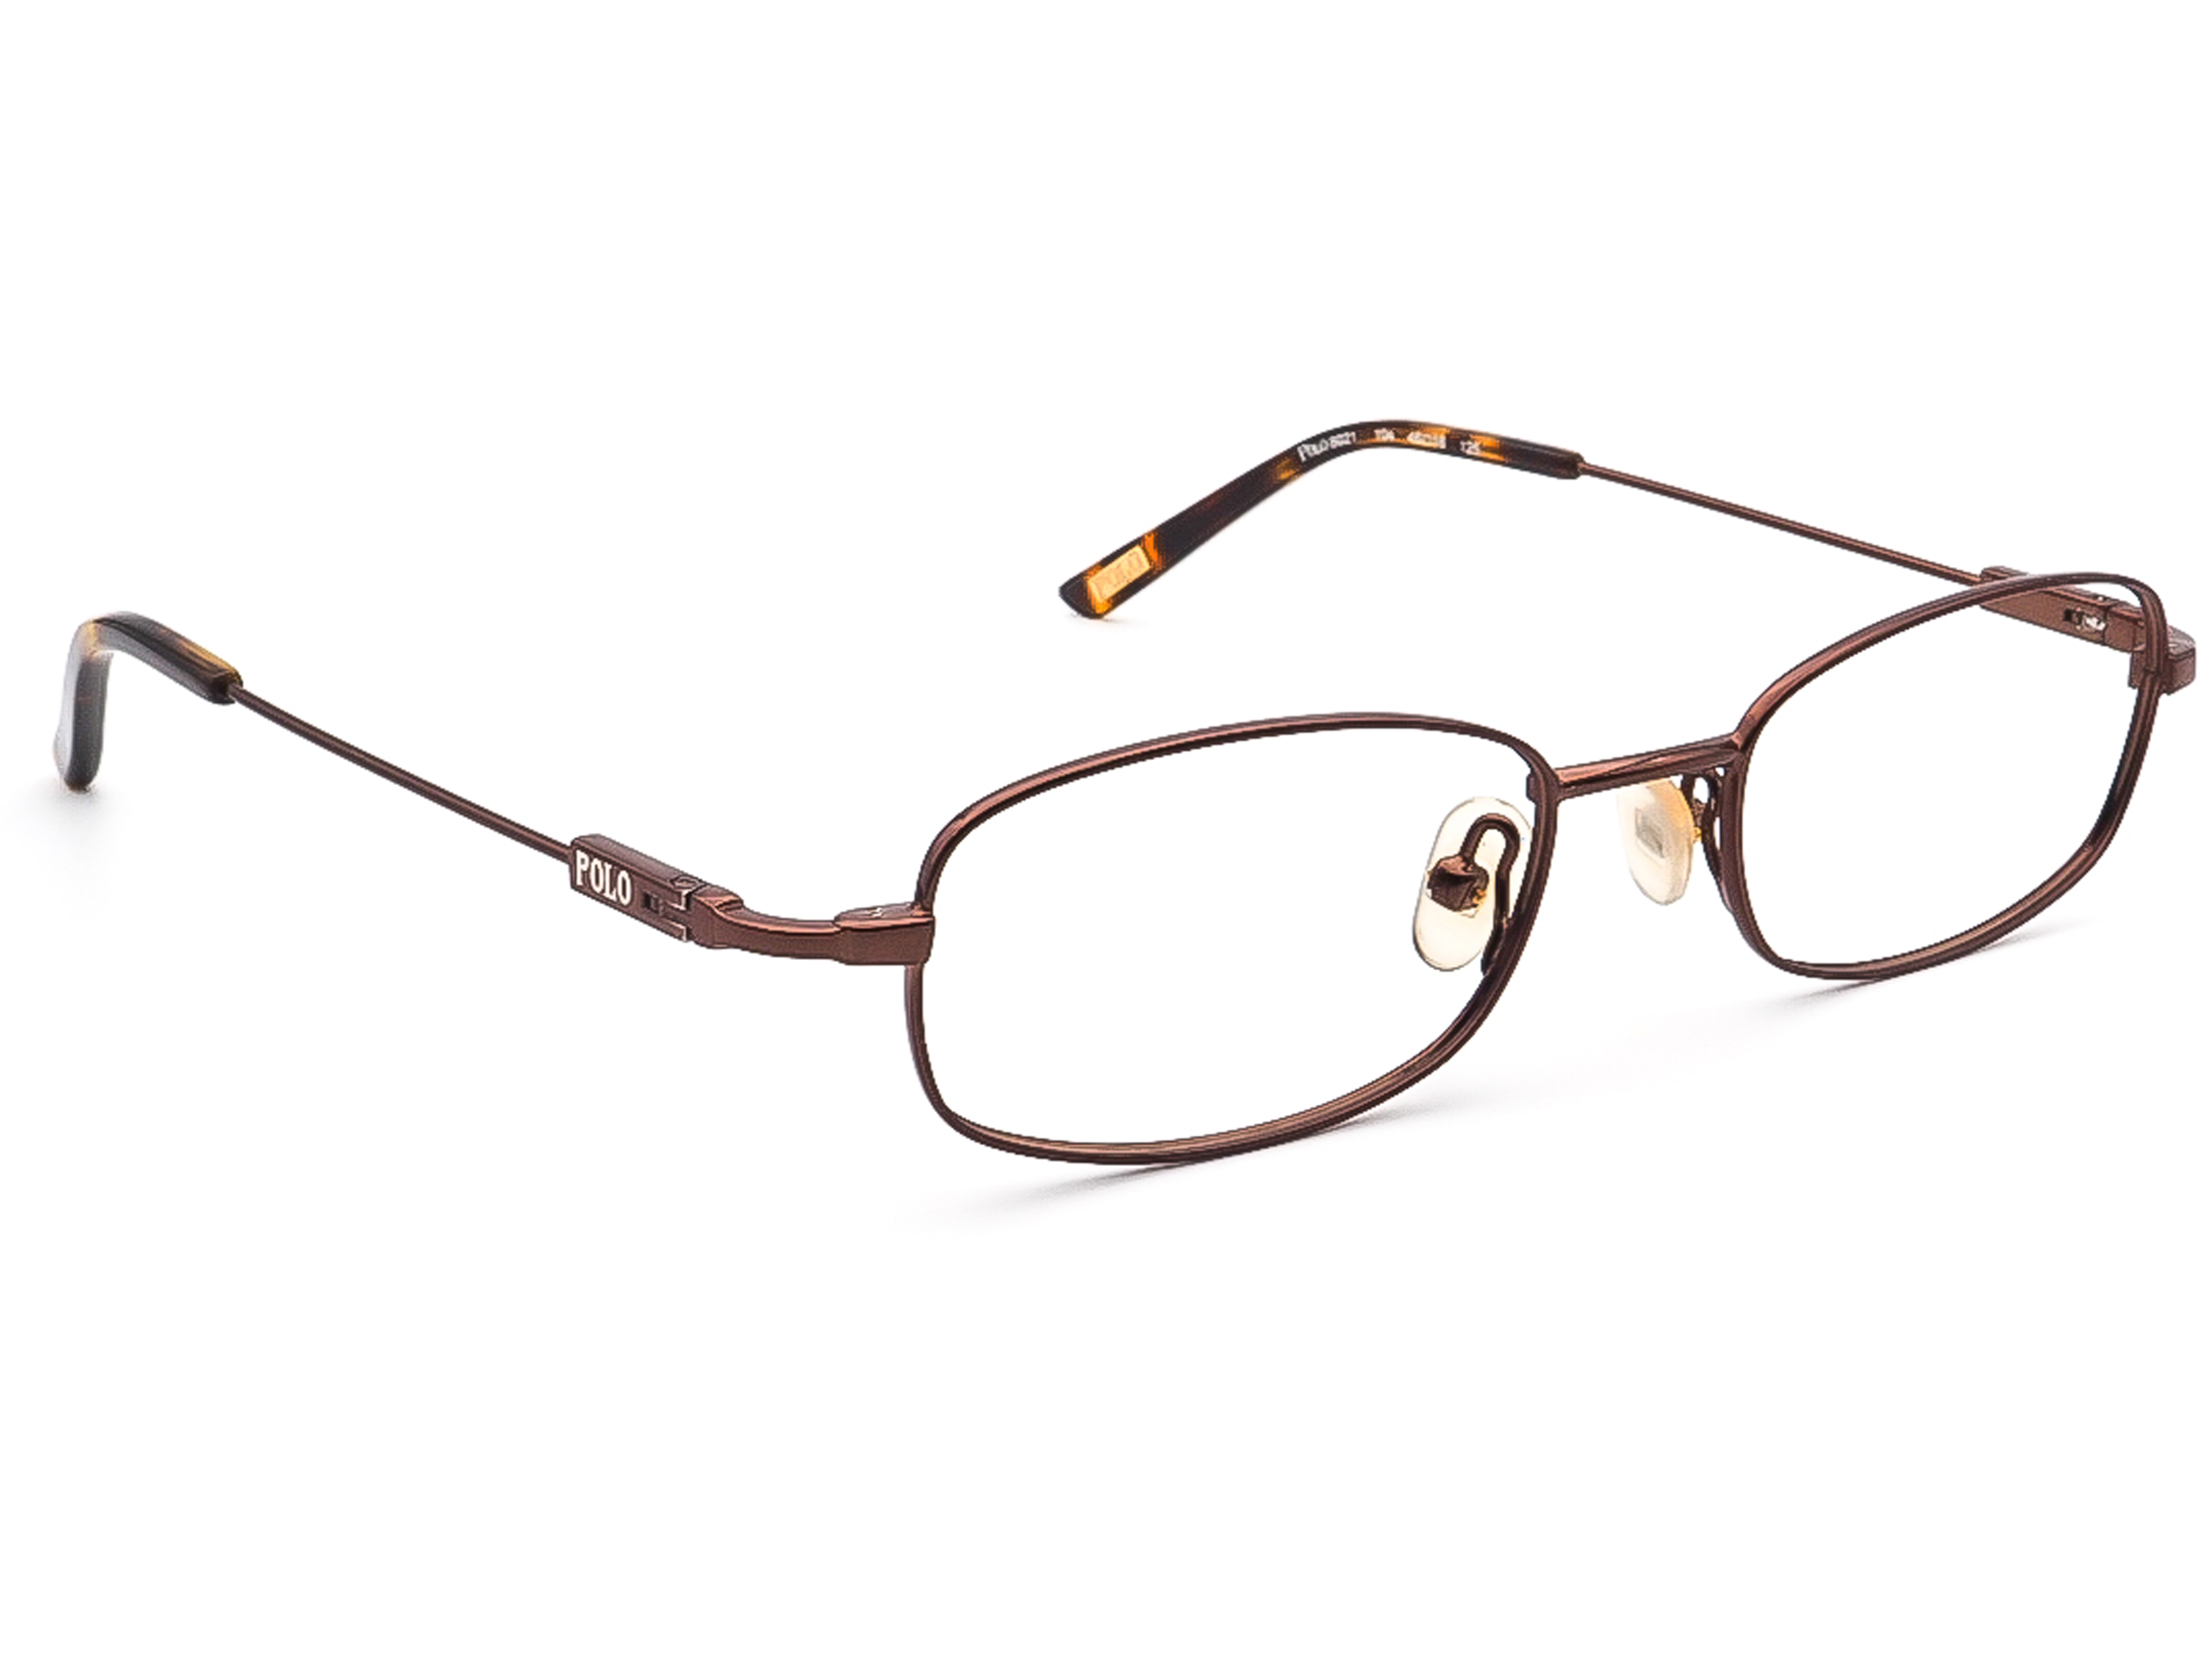 Ralph Lauren Polo 8021 104 Eyeglasses